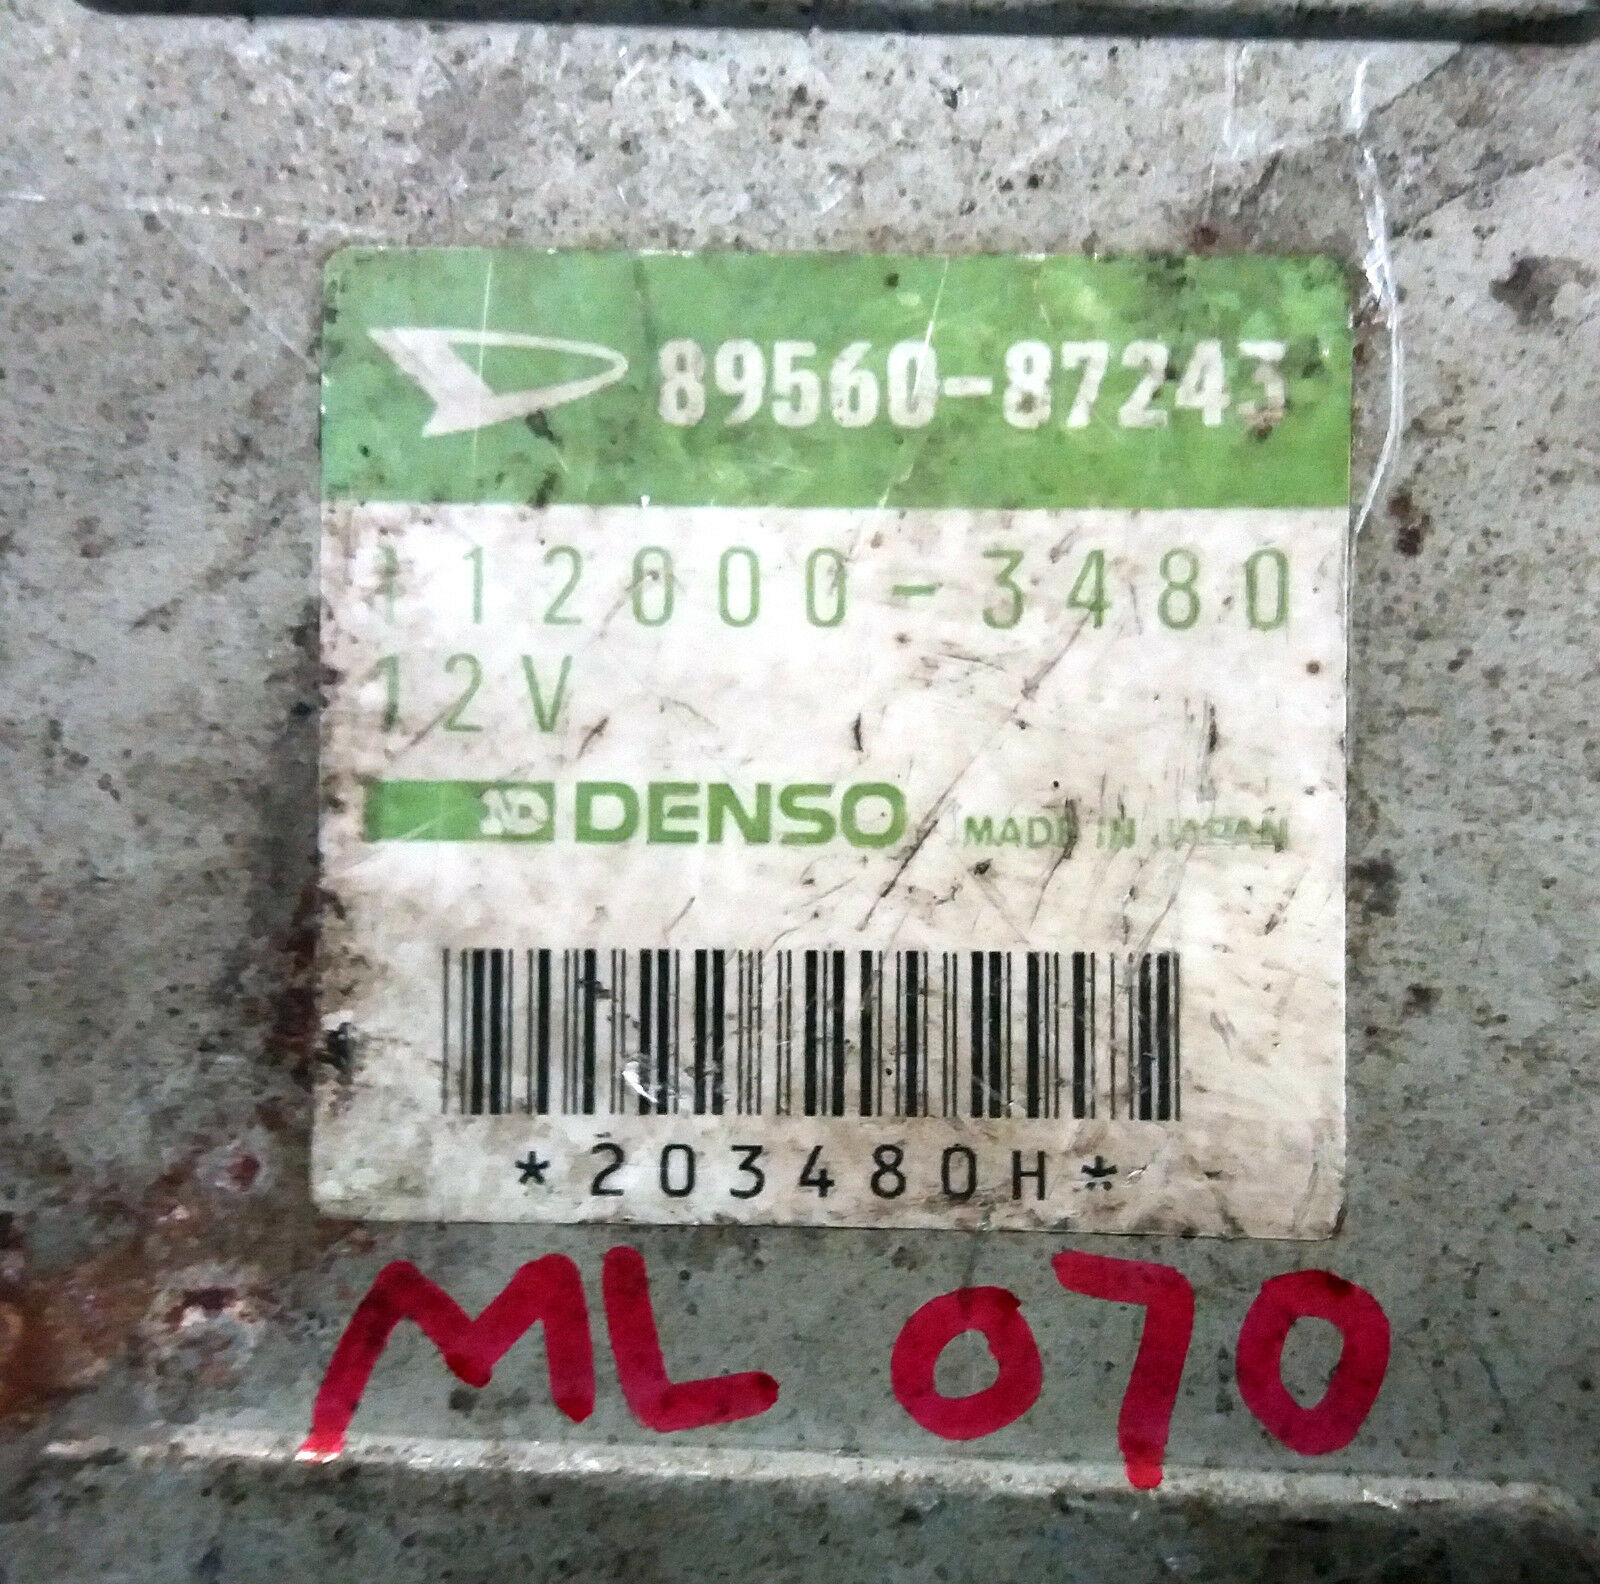 Used Daihatsu Computers And Cruise Control Parts For Sale Page 2 Mira L200s Wiring Diagram 89560 87243 Ecu Ecm Oem Jdm 8956087243